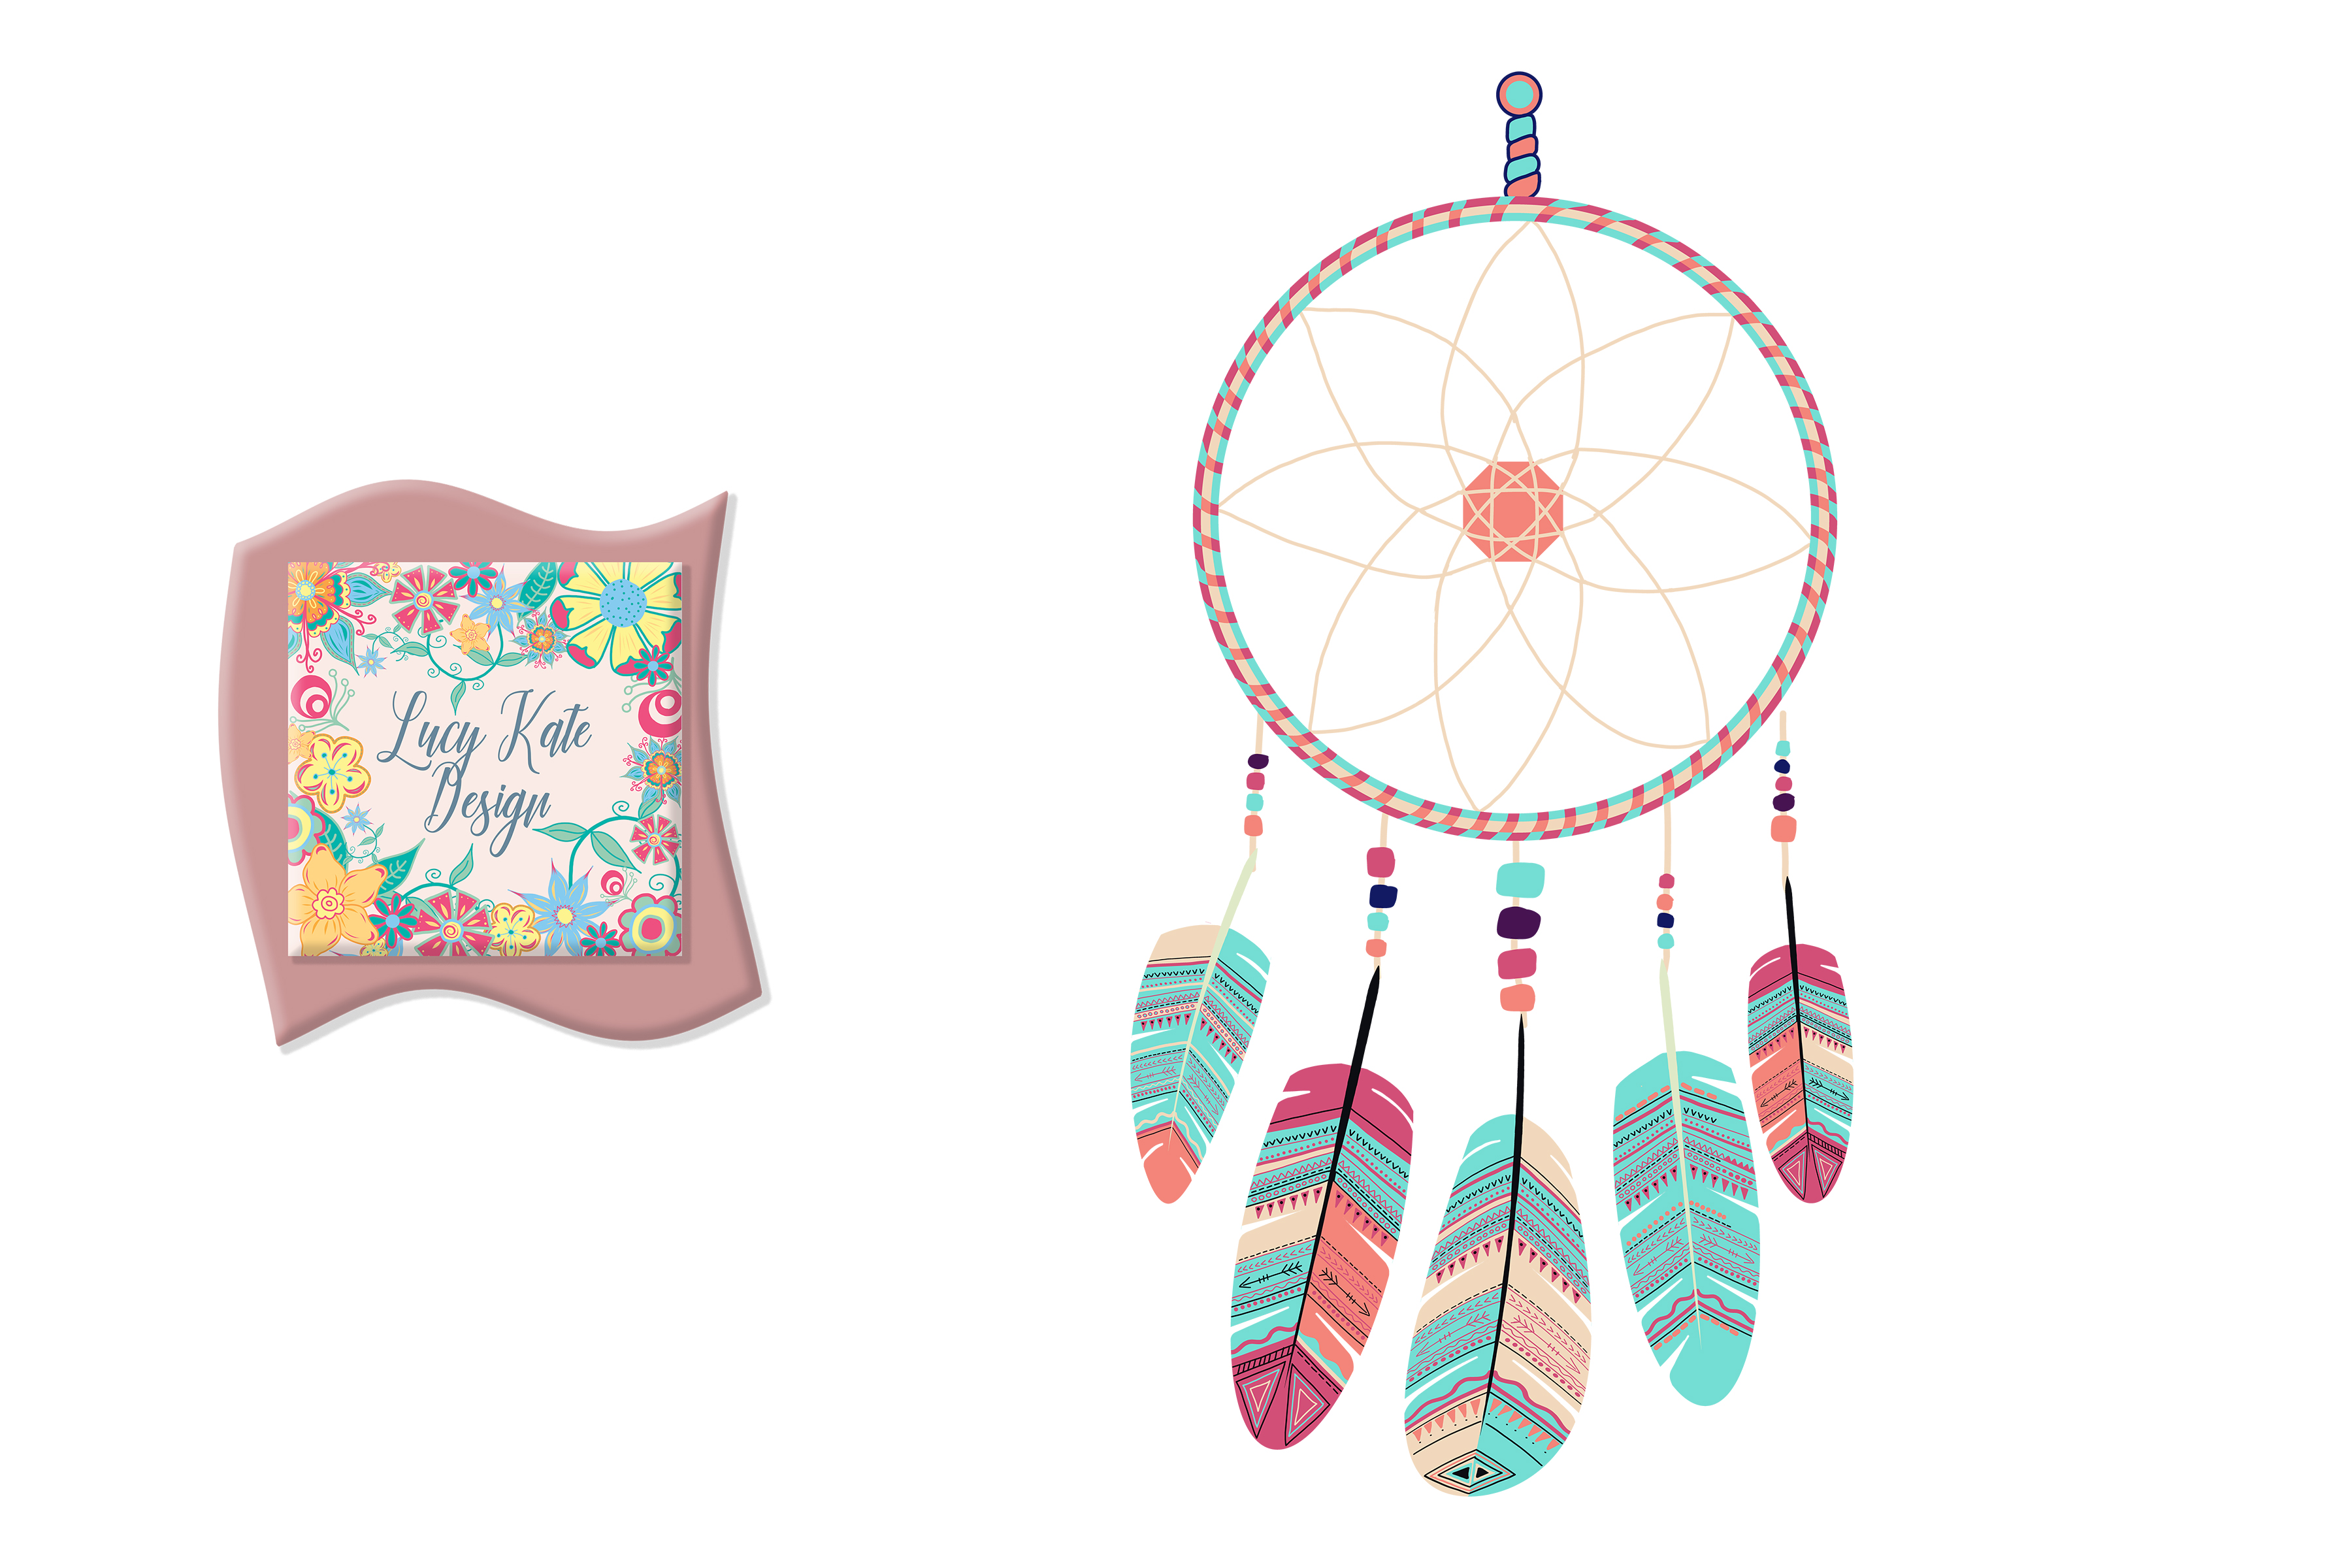 Download Free Dreamcatcher Illustration Graphic By Lucy Kate Design Creative for Cricut Explore, Silhouette and other cutting machines.